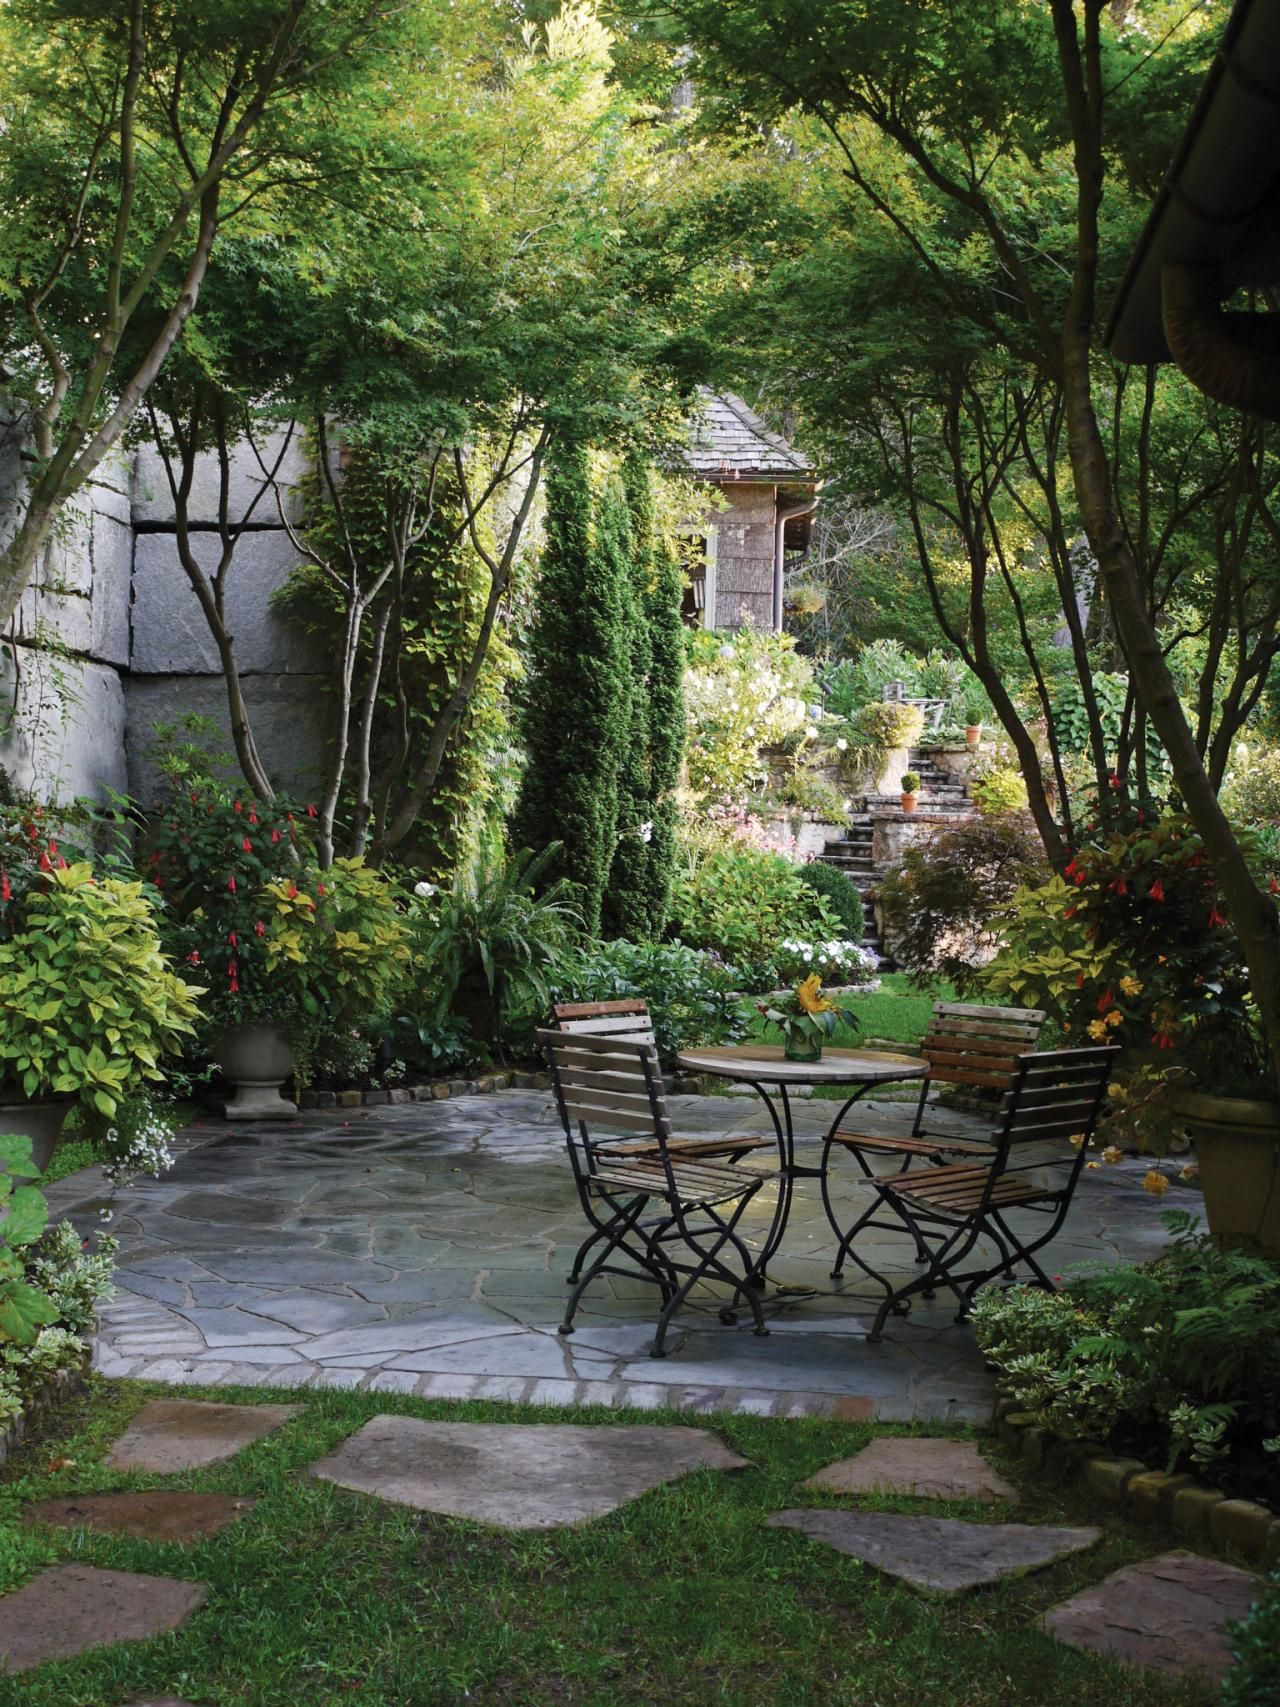 gardensb tips gardens images landscape full for best special with garden bedroom lawn trends ideas designs design cool size patio of zen together bpatio gallery barrie small